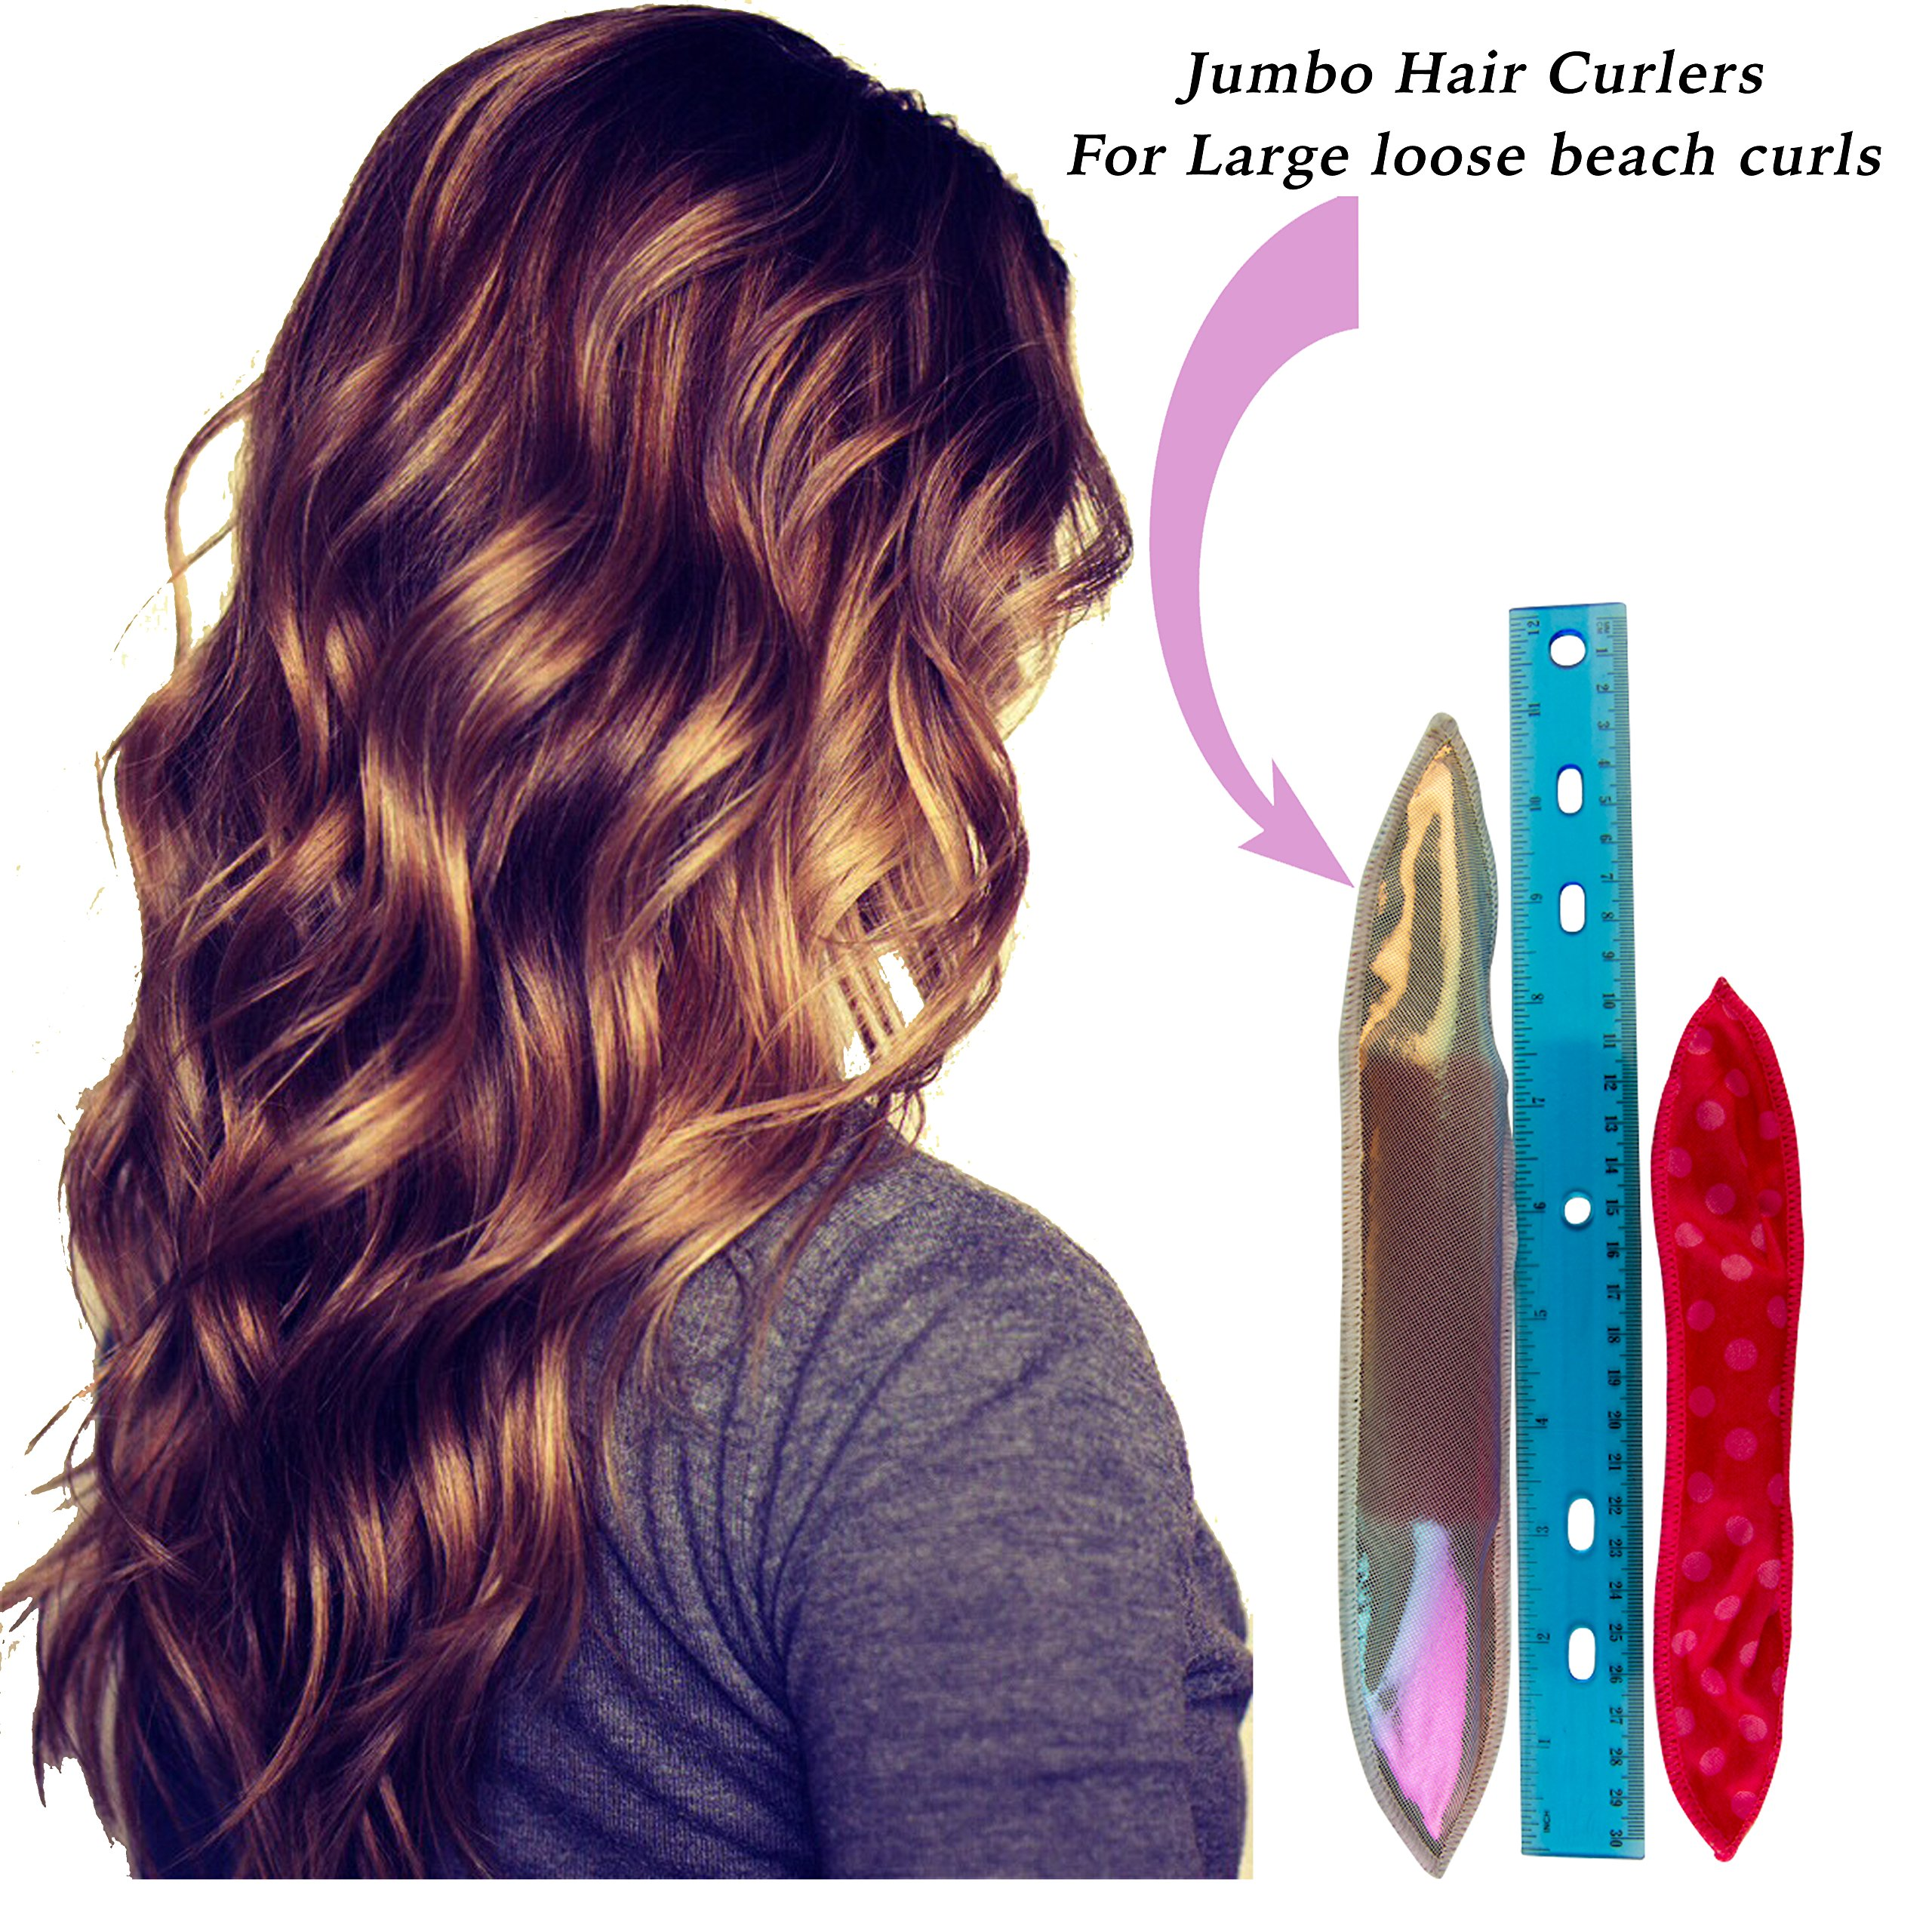 Jumbo over night hair curlers for large curls in when you wake up in the morning, Revolutionizing old fashion rods by Lee Beauty Professional (Image #1)